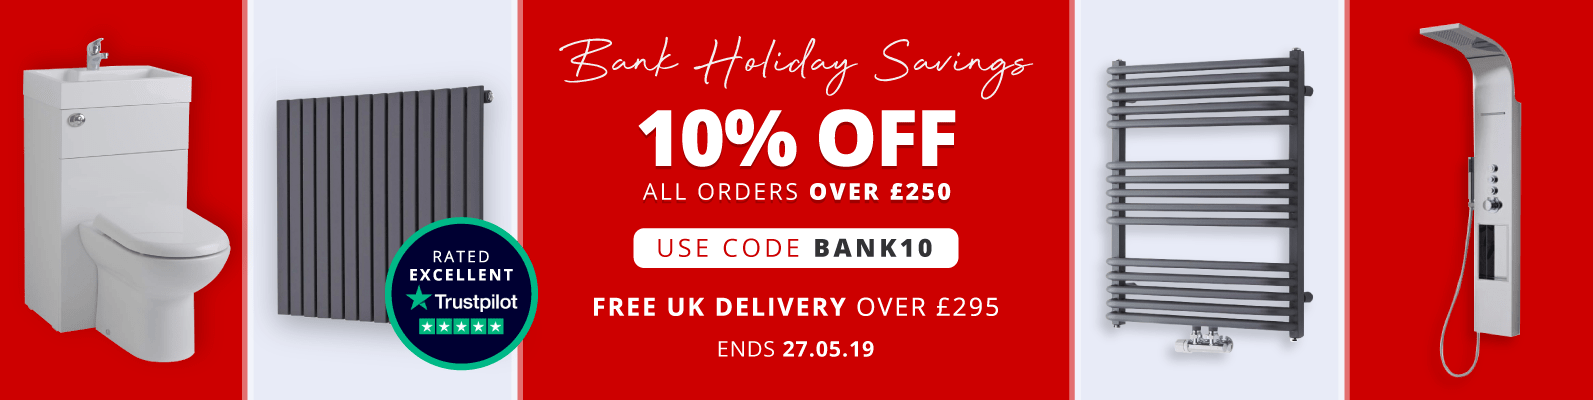 Bank Holiday Savings  10% Off All Orders Over £250 Use Code: BANK10  Free UK Delivery Over £295